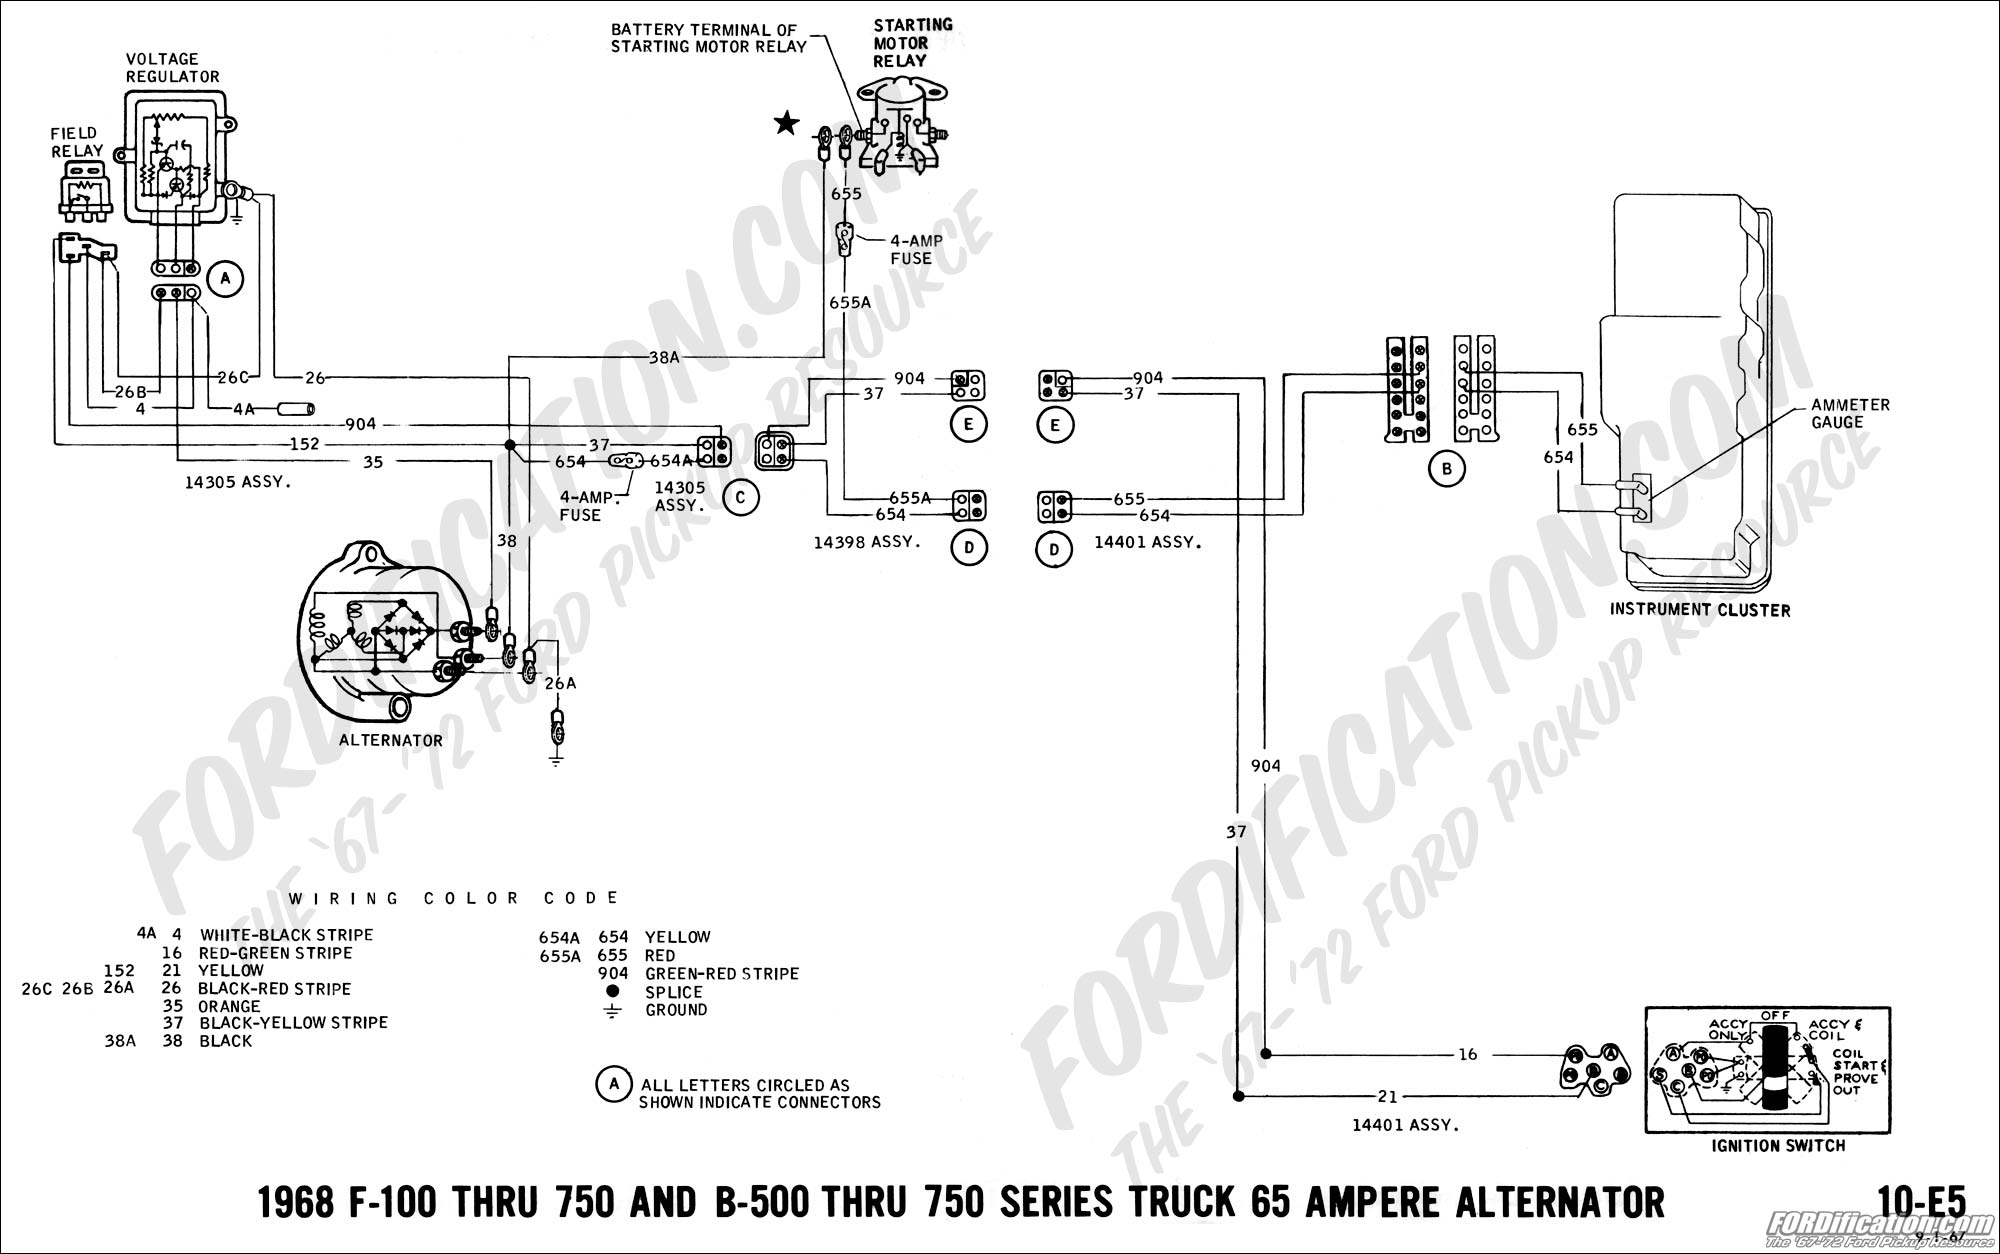 93 ford f700 truck wiring diagrams ford f700 alternator wiring ford truck technical drawings and schematics - section h ... #8